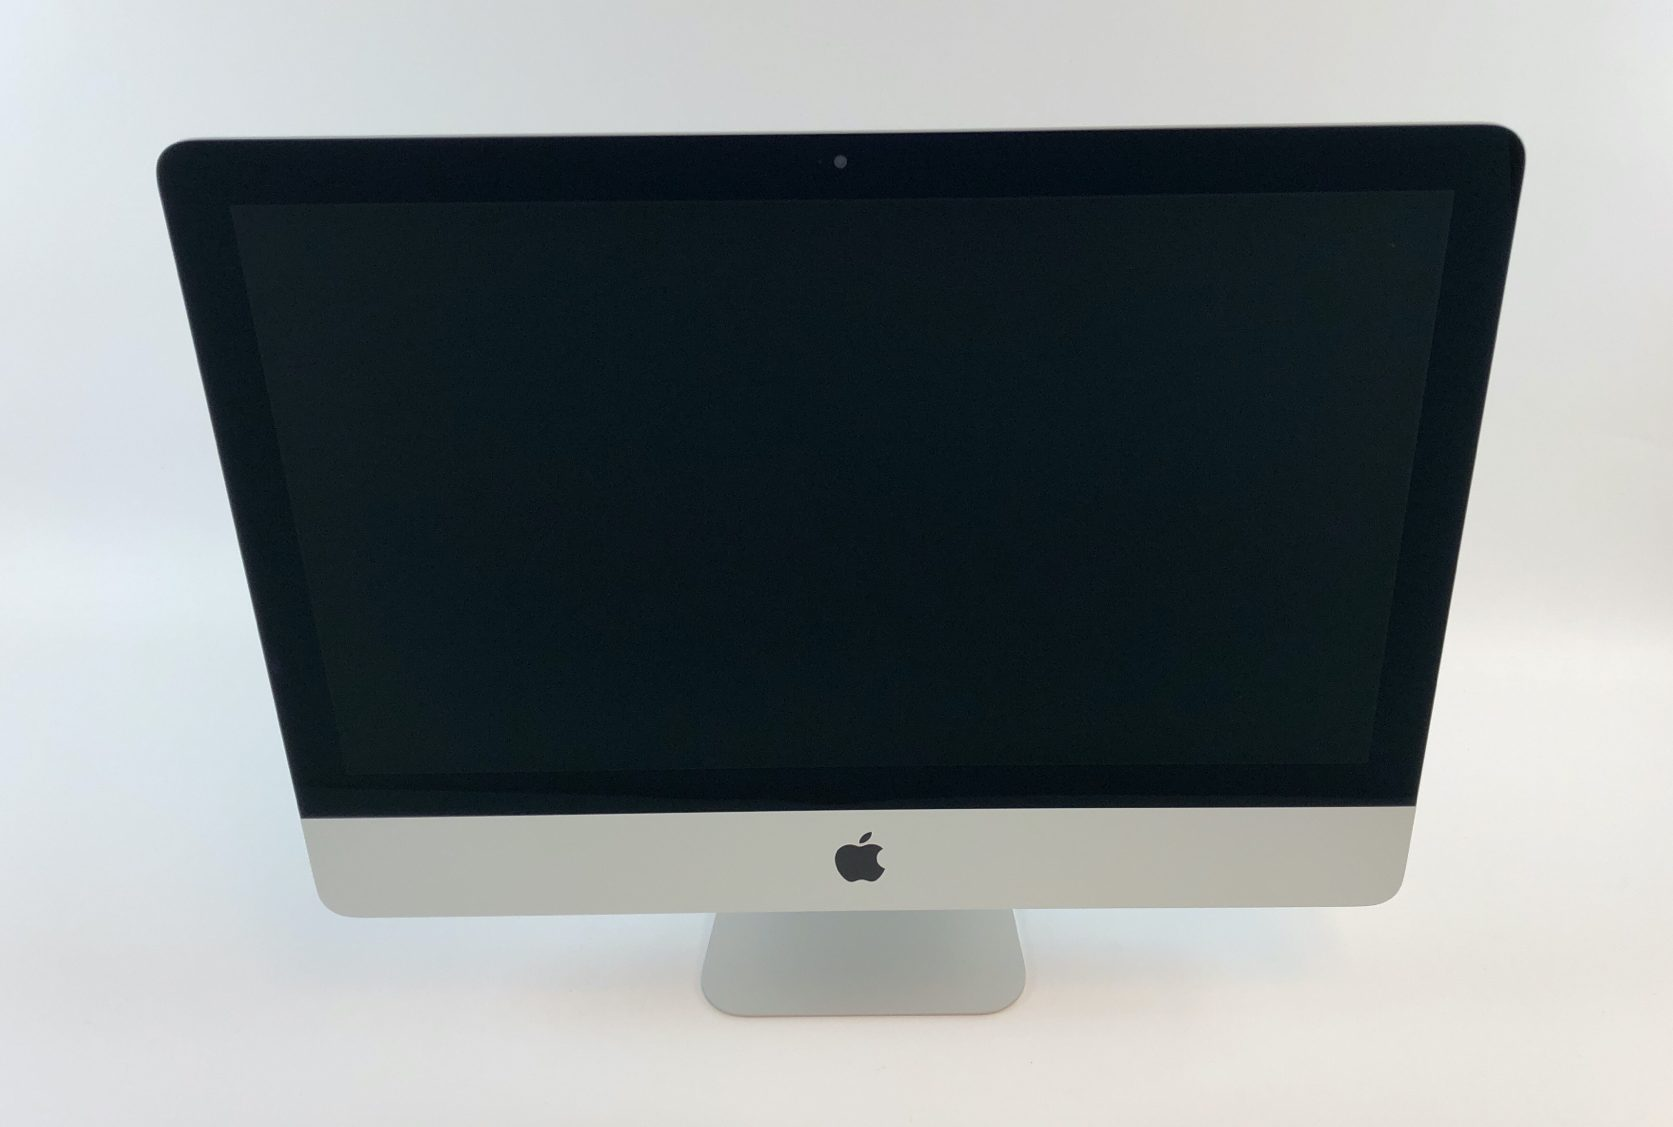 "iMac 21.5"" Retina 4K Late 2015 (Intel Quad-Core i5 3.1 GHz 8 GB RAM 1 TB HDD), Intel Quad-Core i5 3.1 GHz, 8 GB RAM, 1 TB HDD, Afbeelding 1"